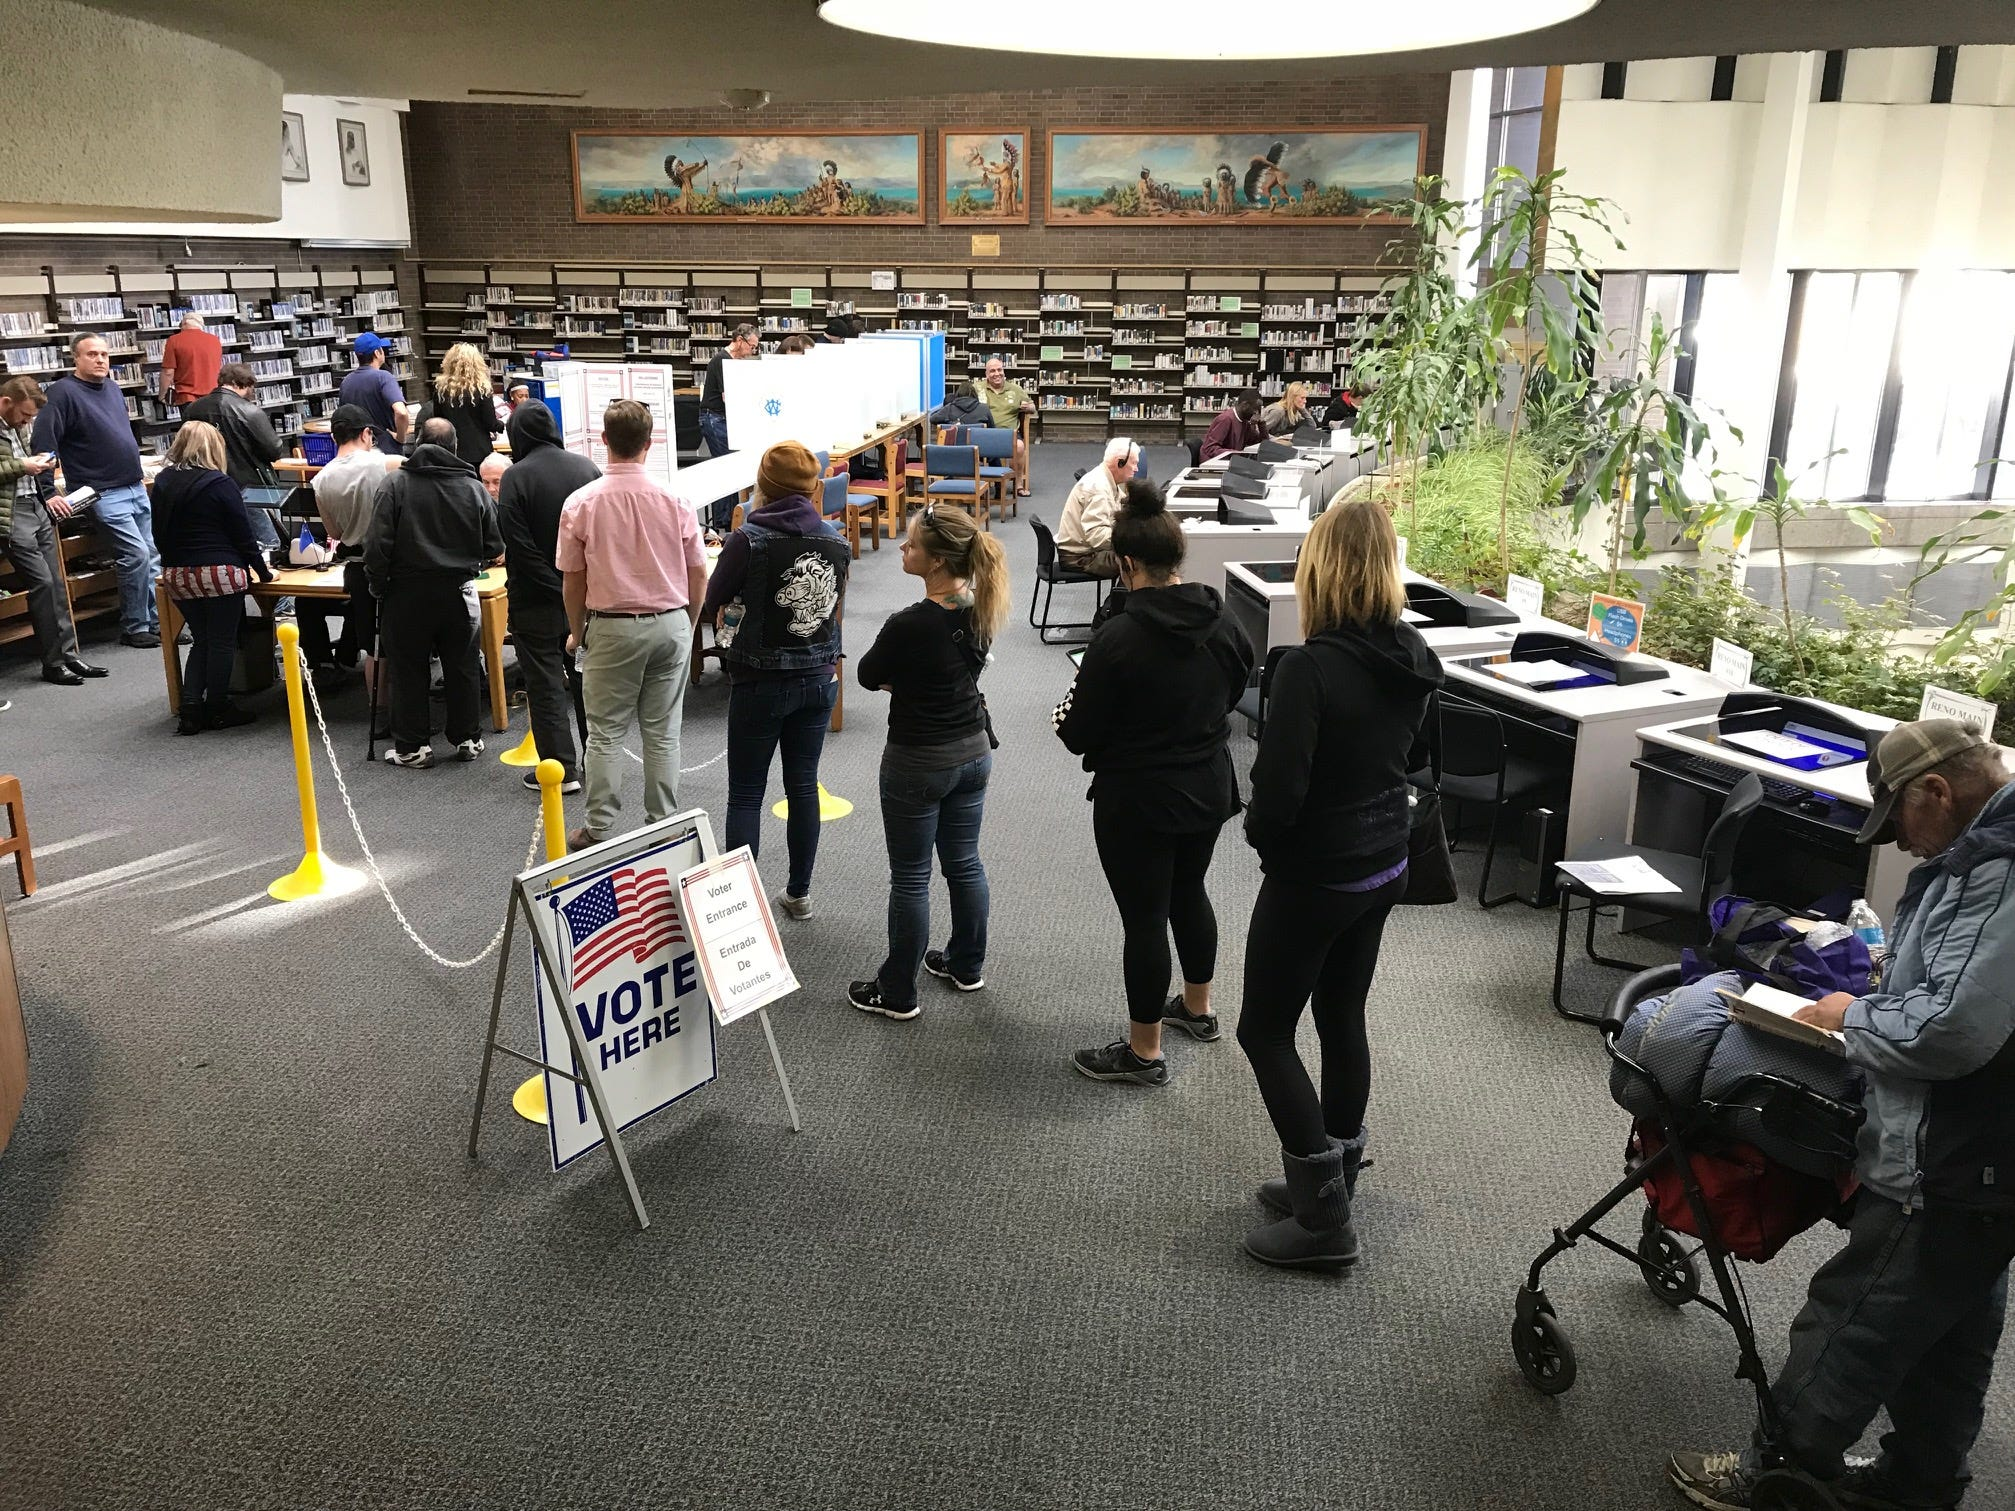 Nevada election officials: No truth to NV GOP chair's unfounded voter 'shenanigans' claim